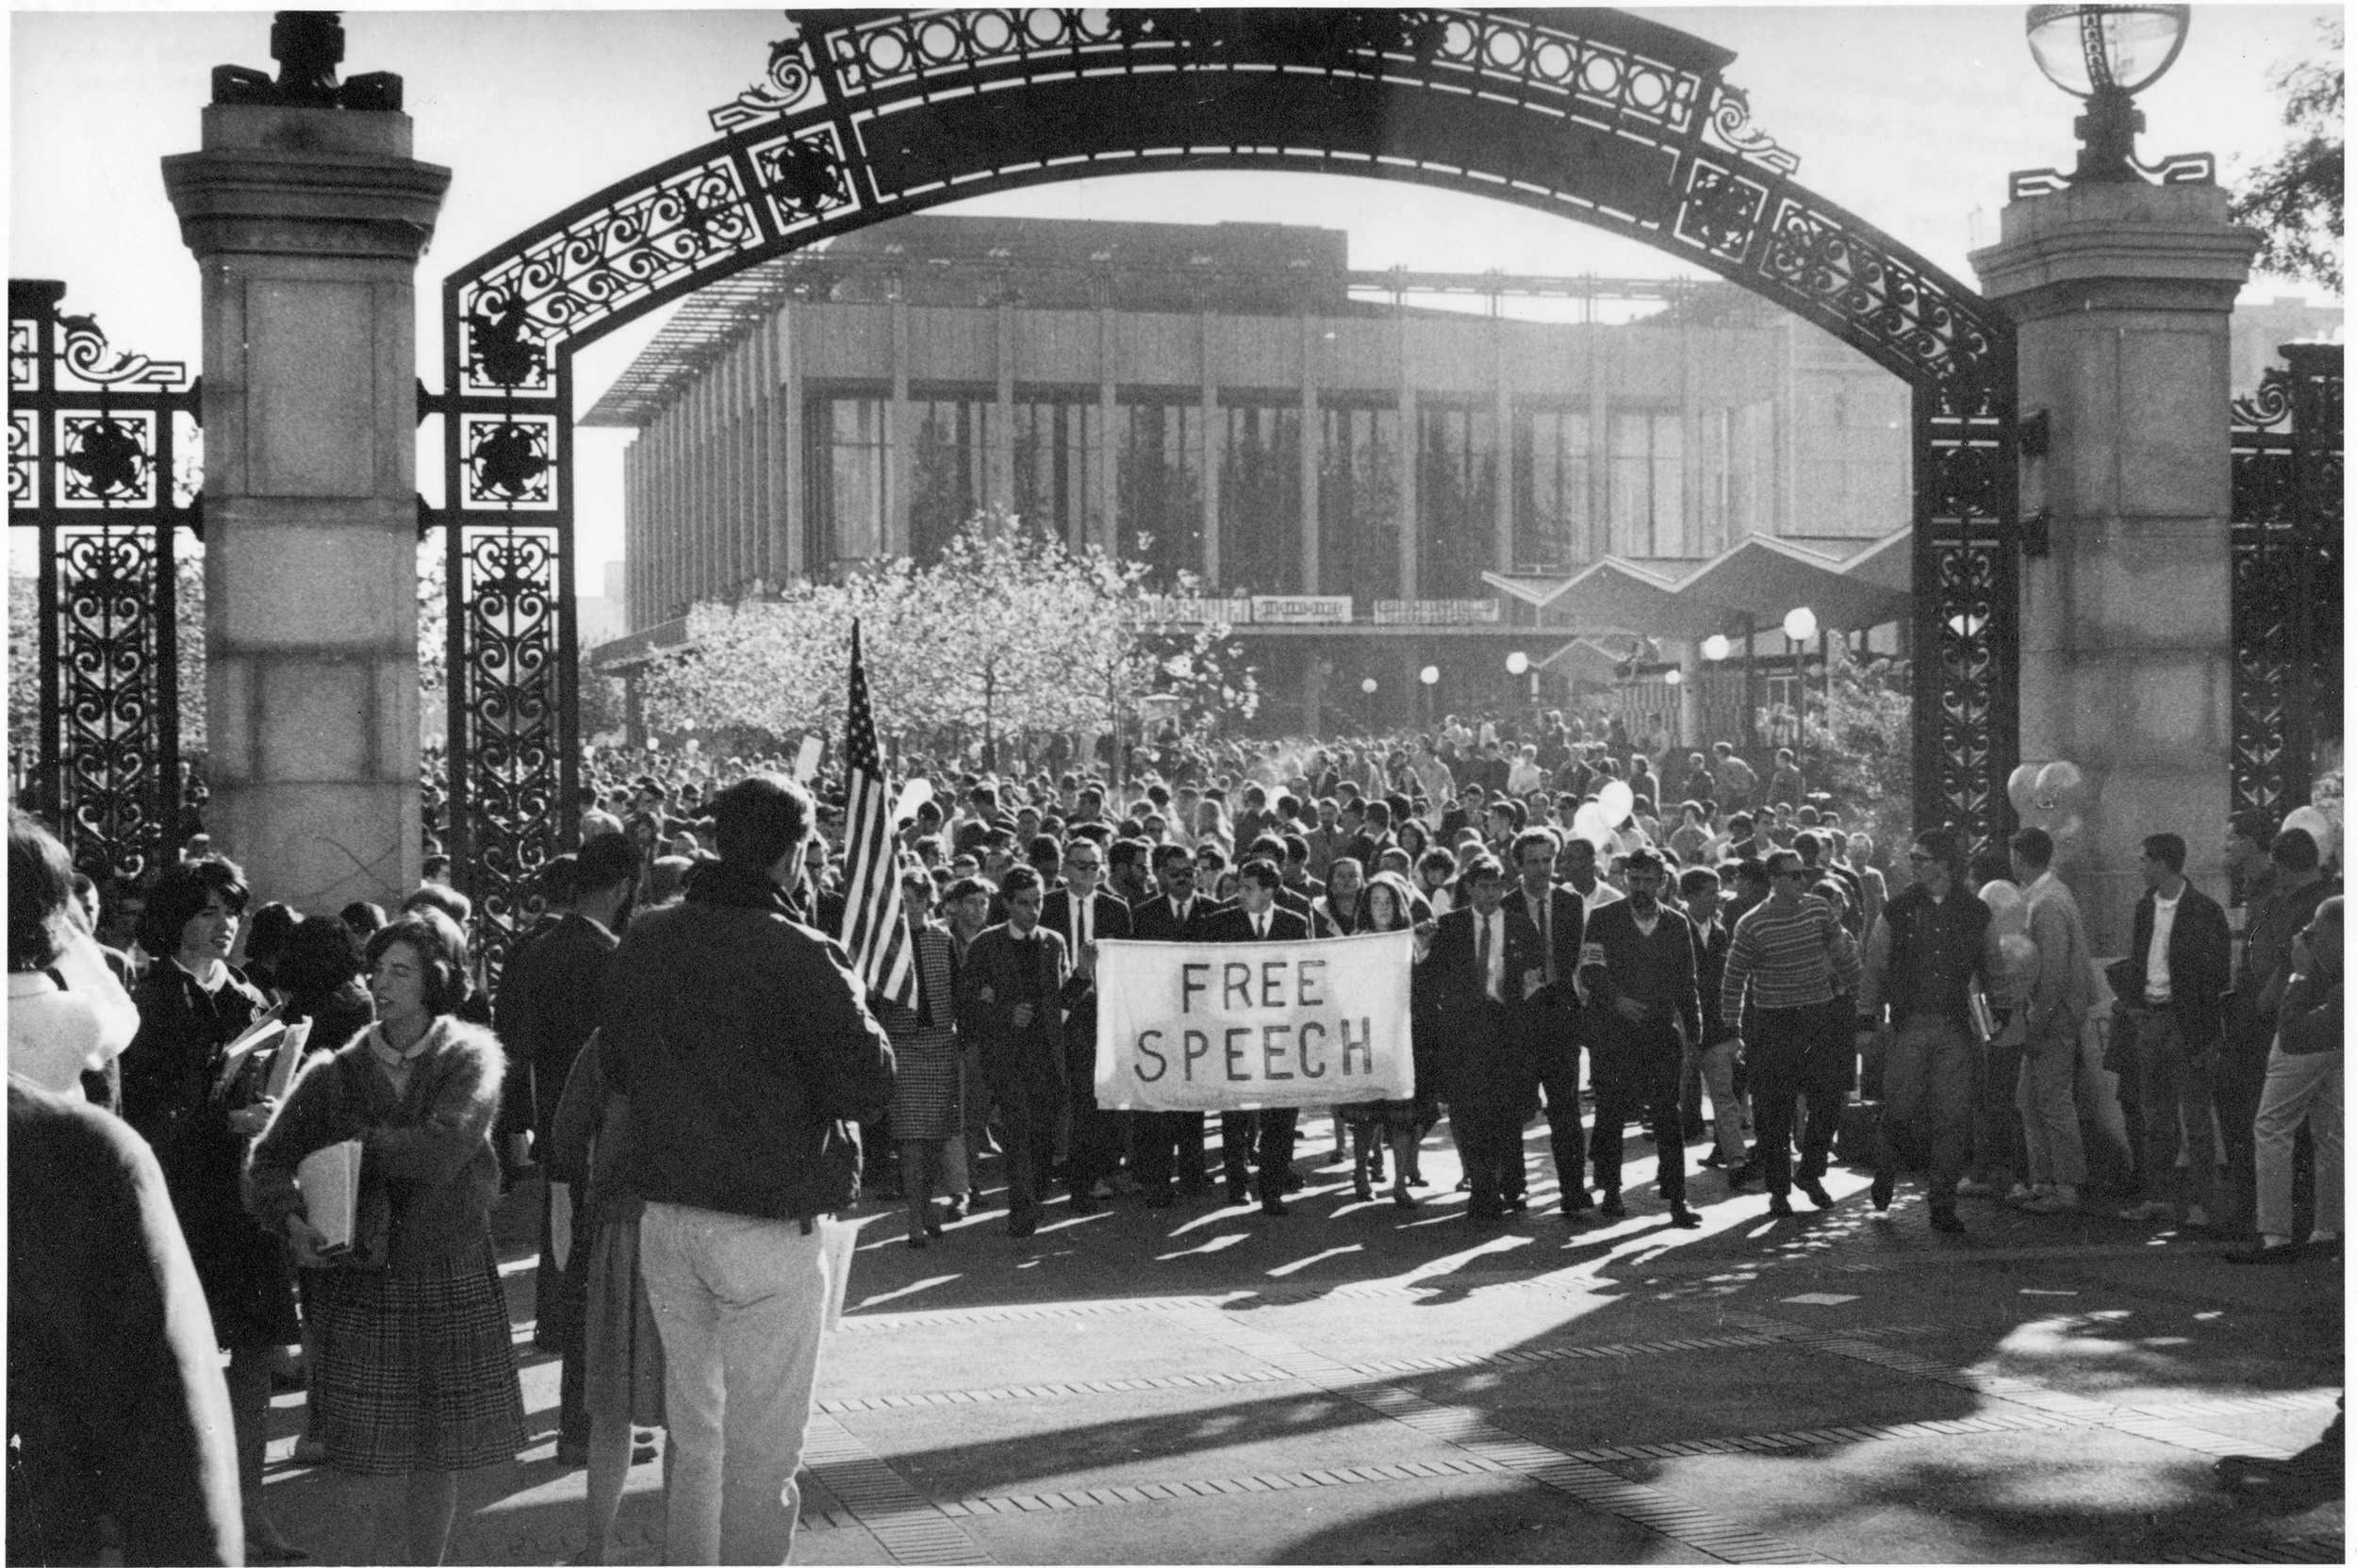 The Free Speech Movement at Berkeley changed U.S. perceptions of collegiate activism.